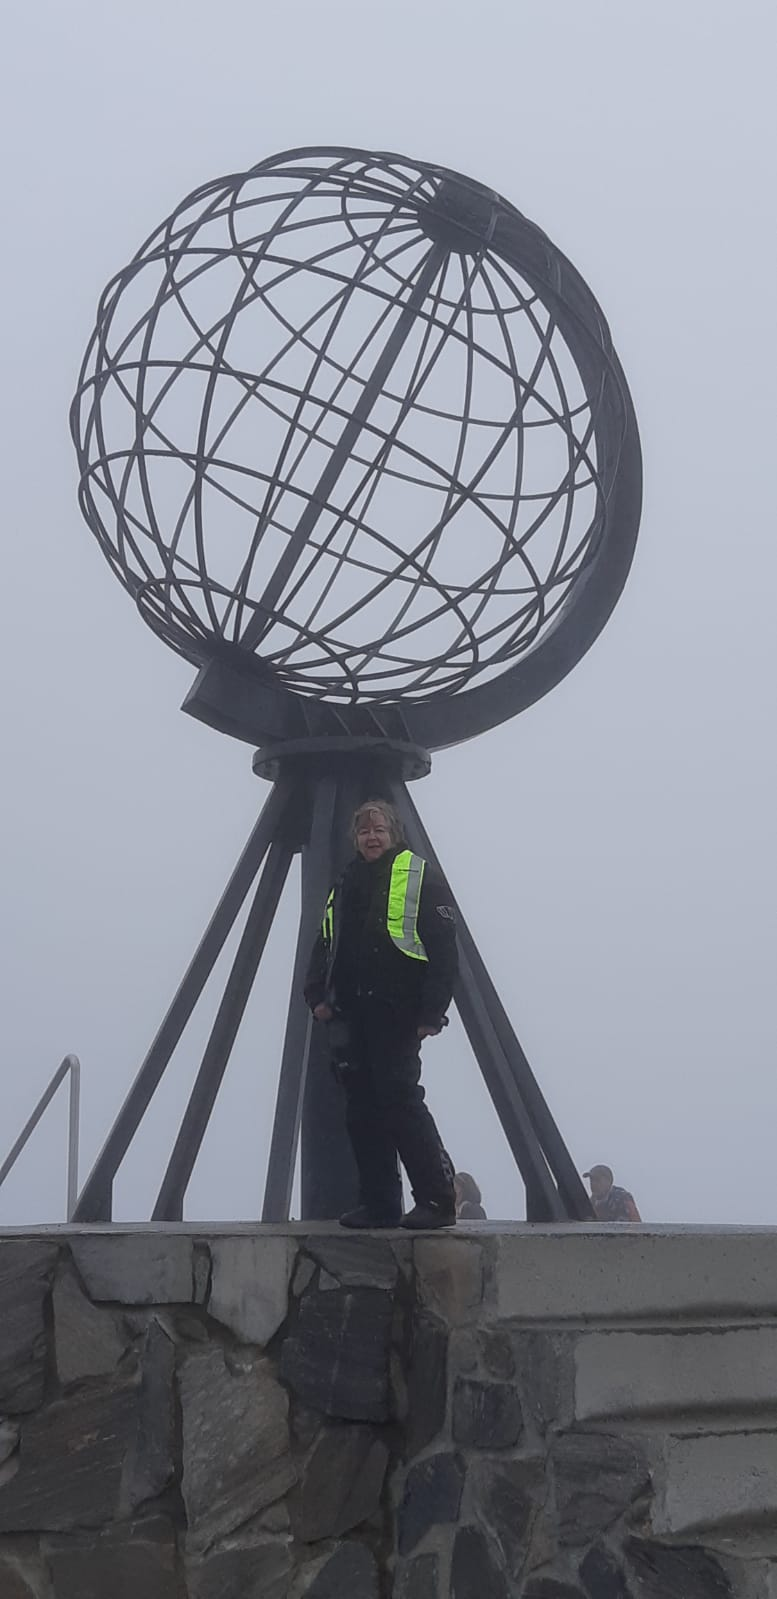 Pics from trips to Norway, Sweden and Lapland 3f3e8310